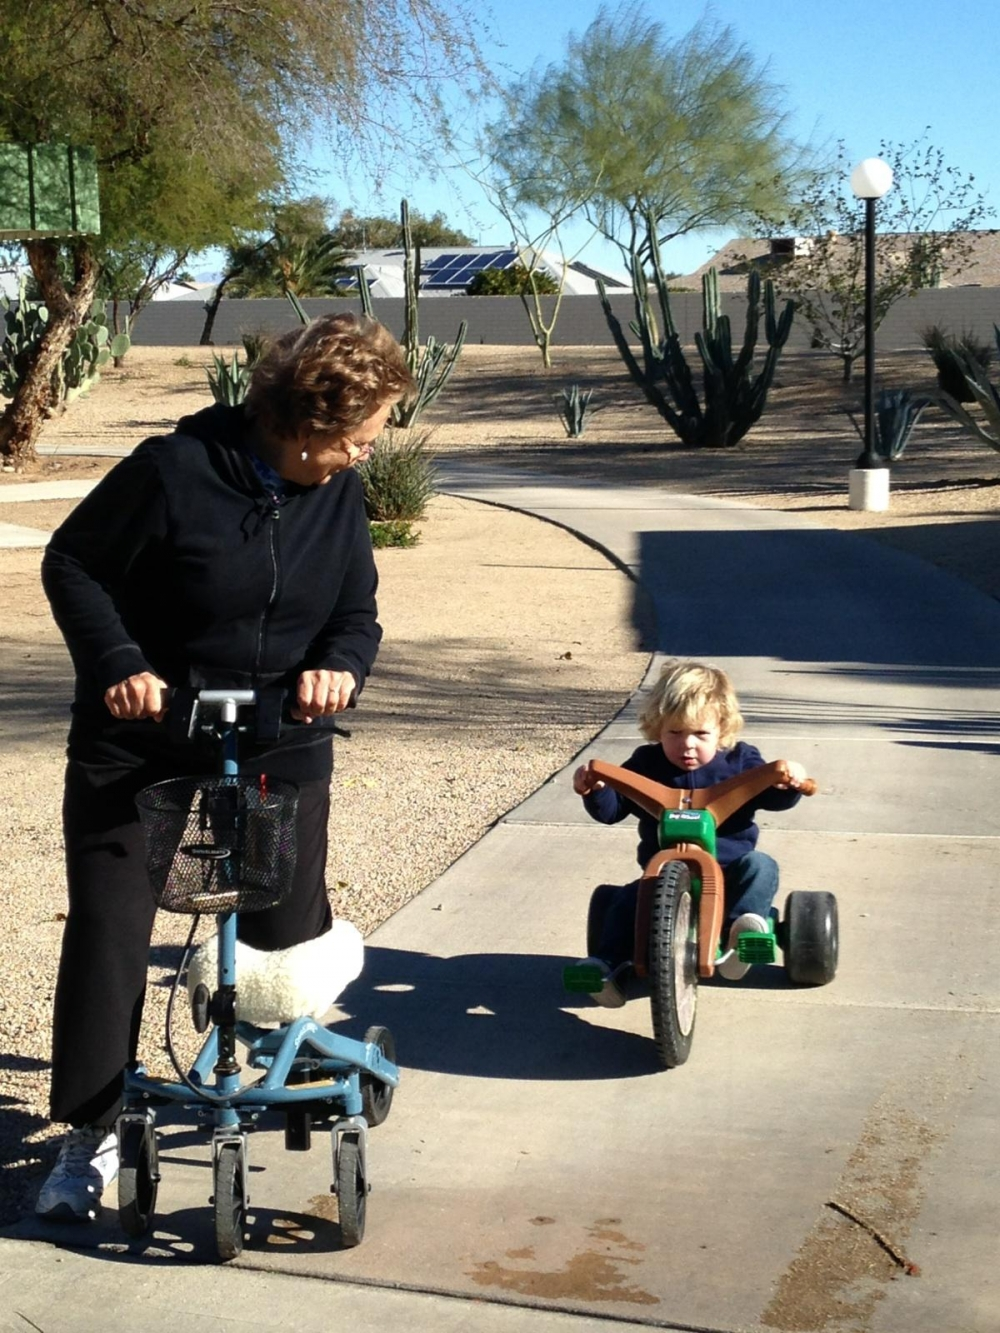 Janet on the Swivelmate Knee Walker from Sun City West Arizona March 2015